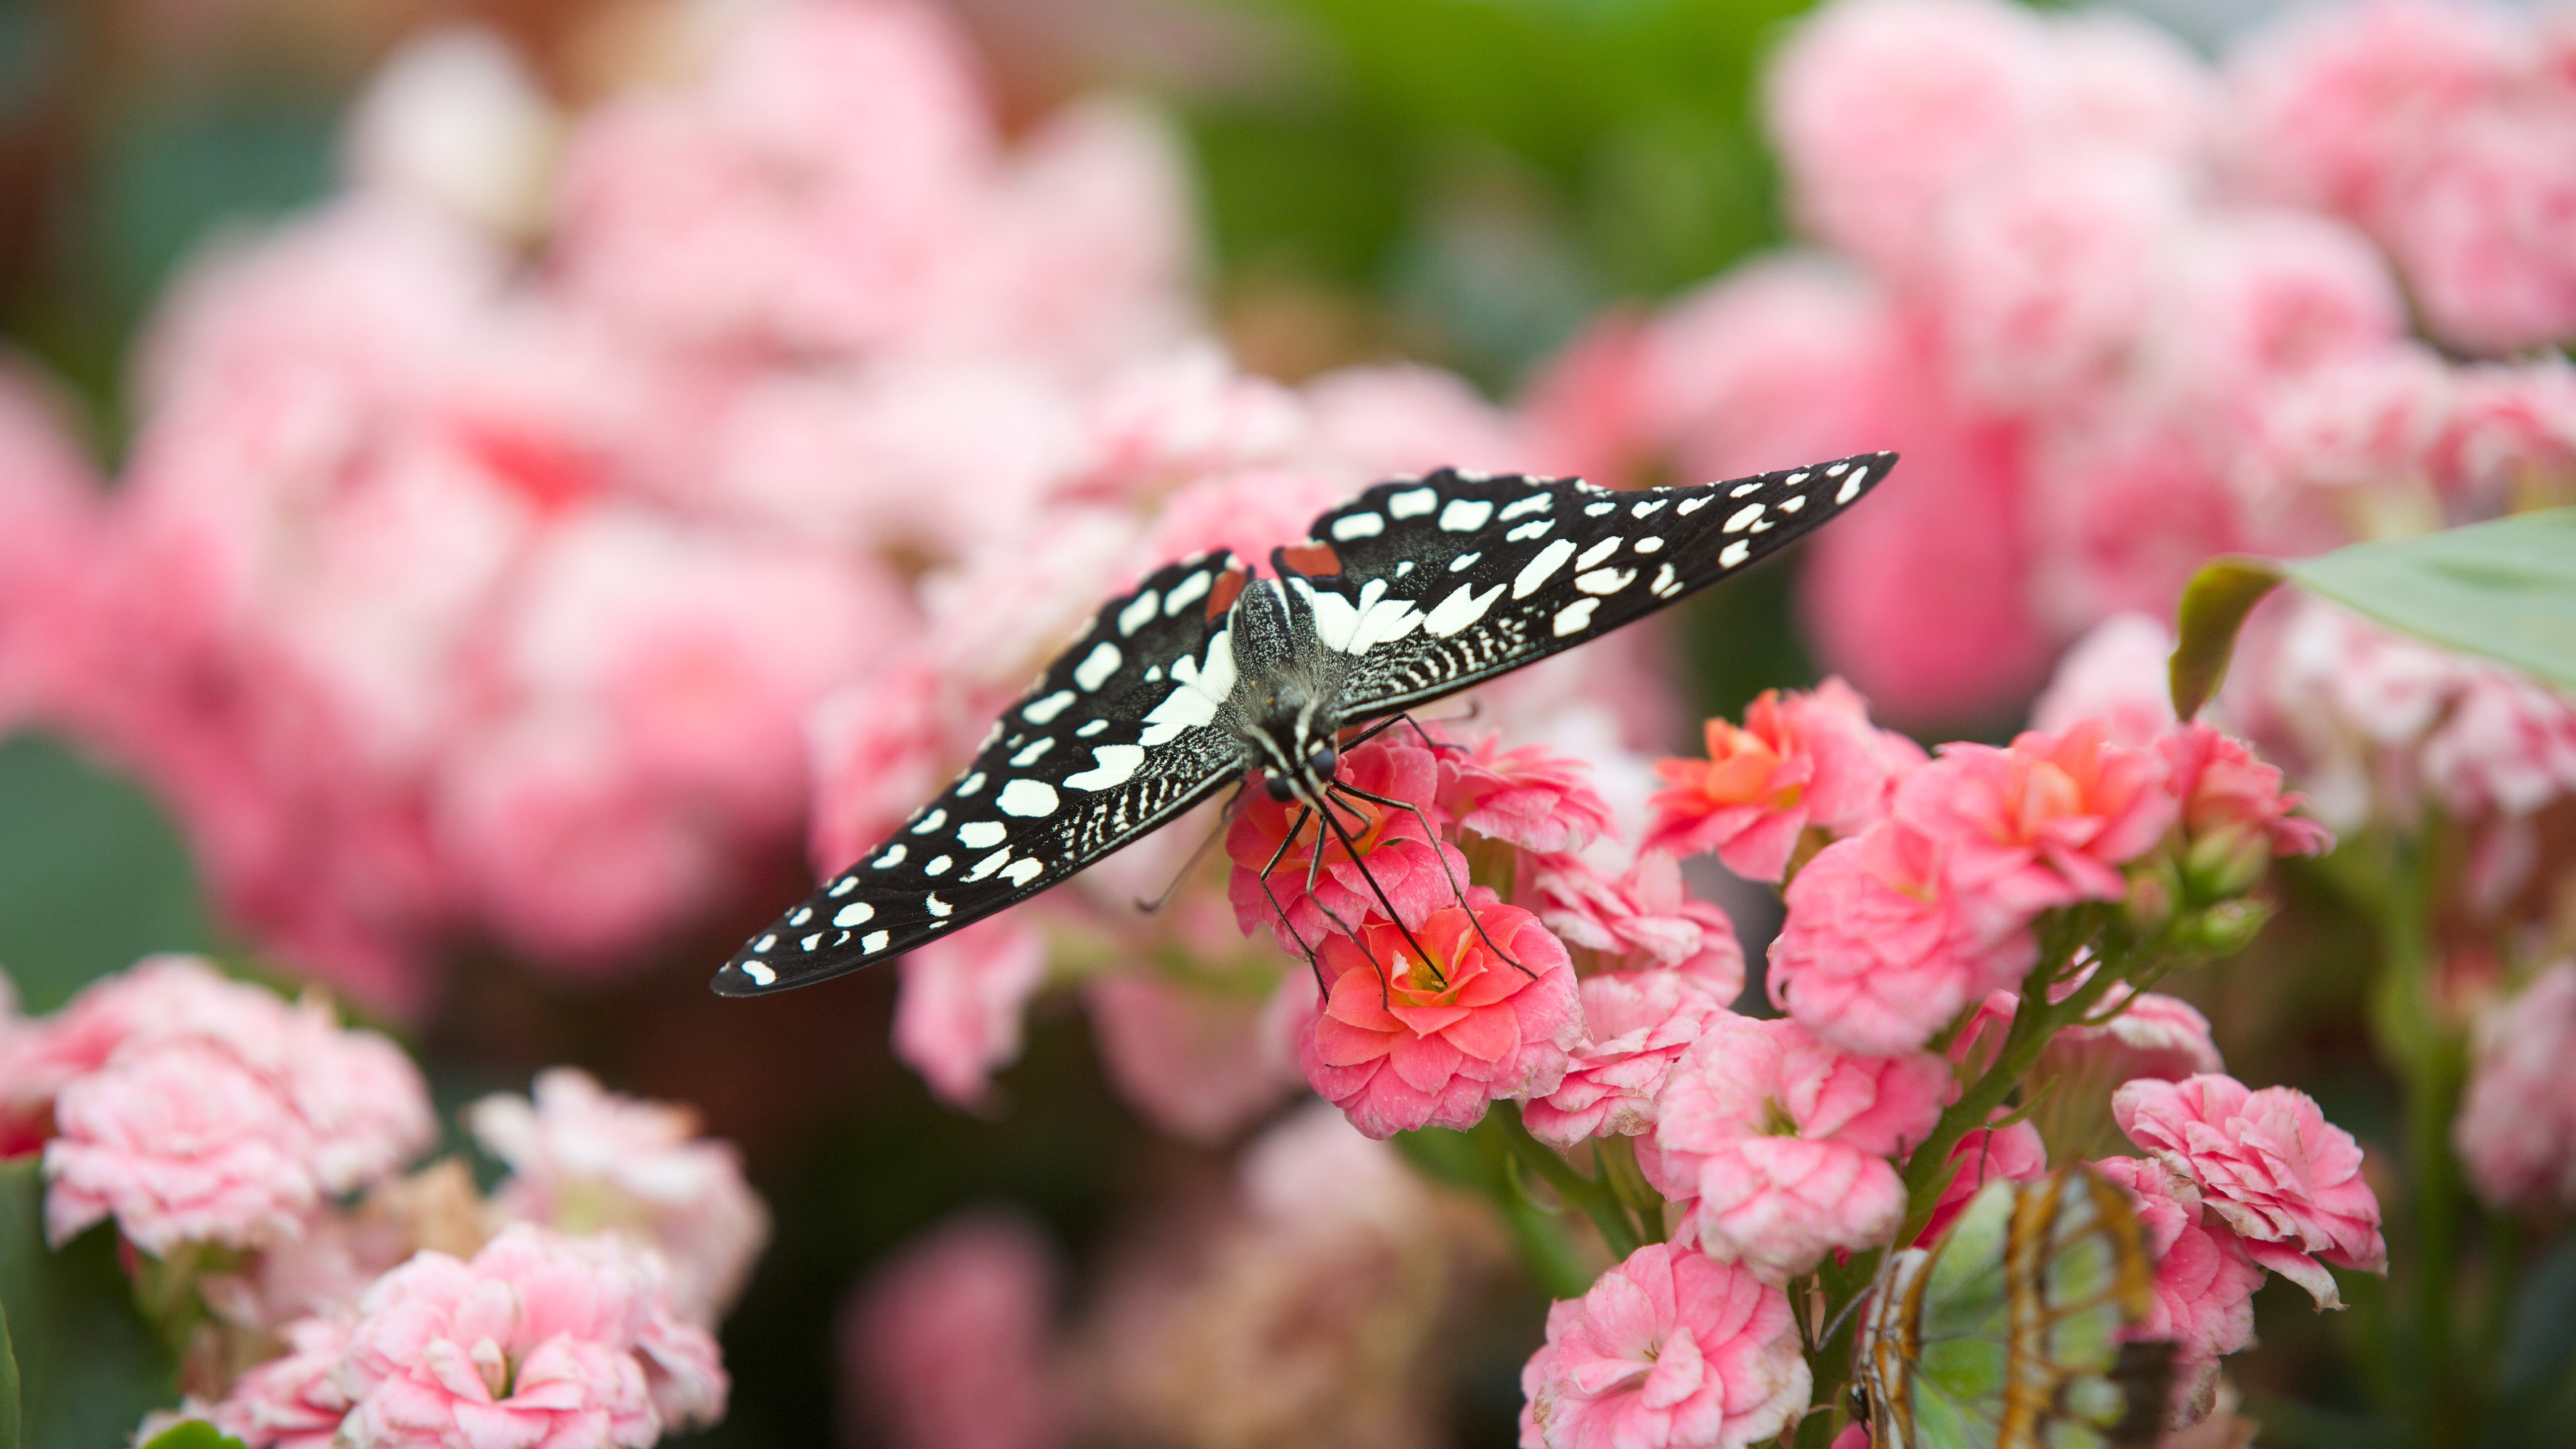 Black butterfly on pink flowers wallpaper 5120x2880